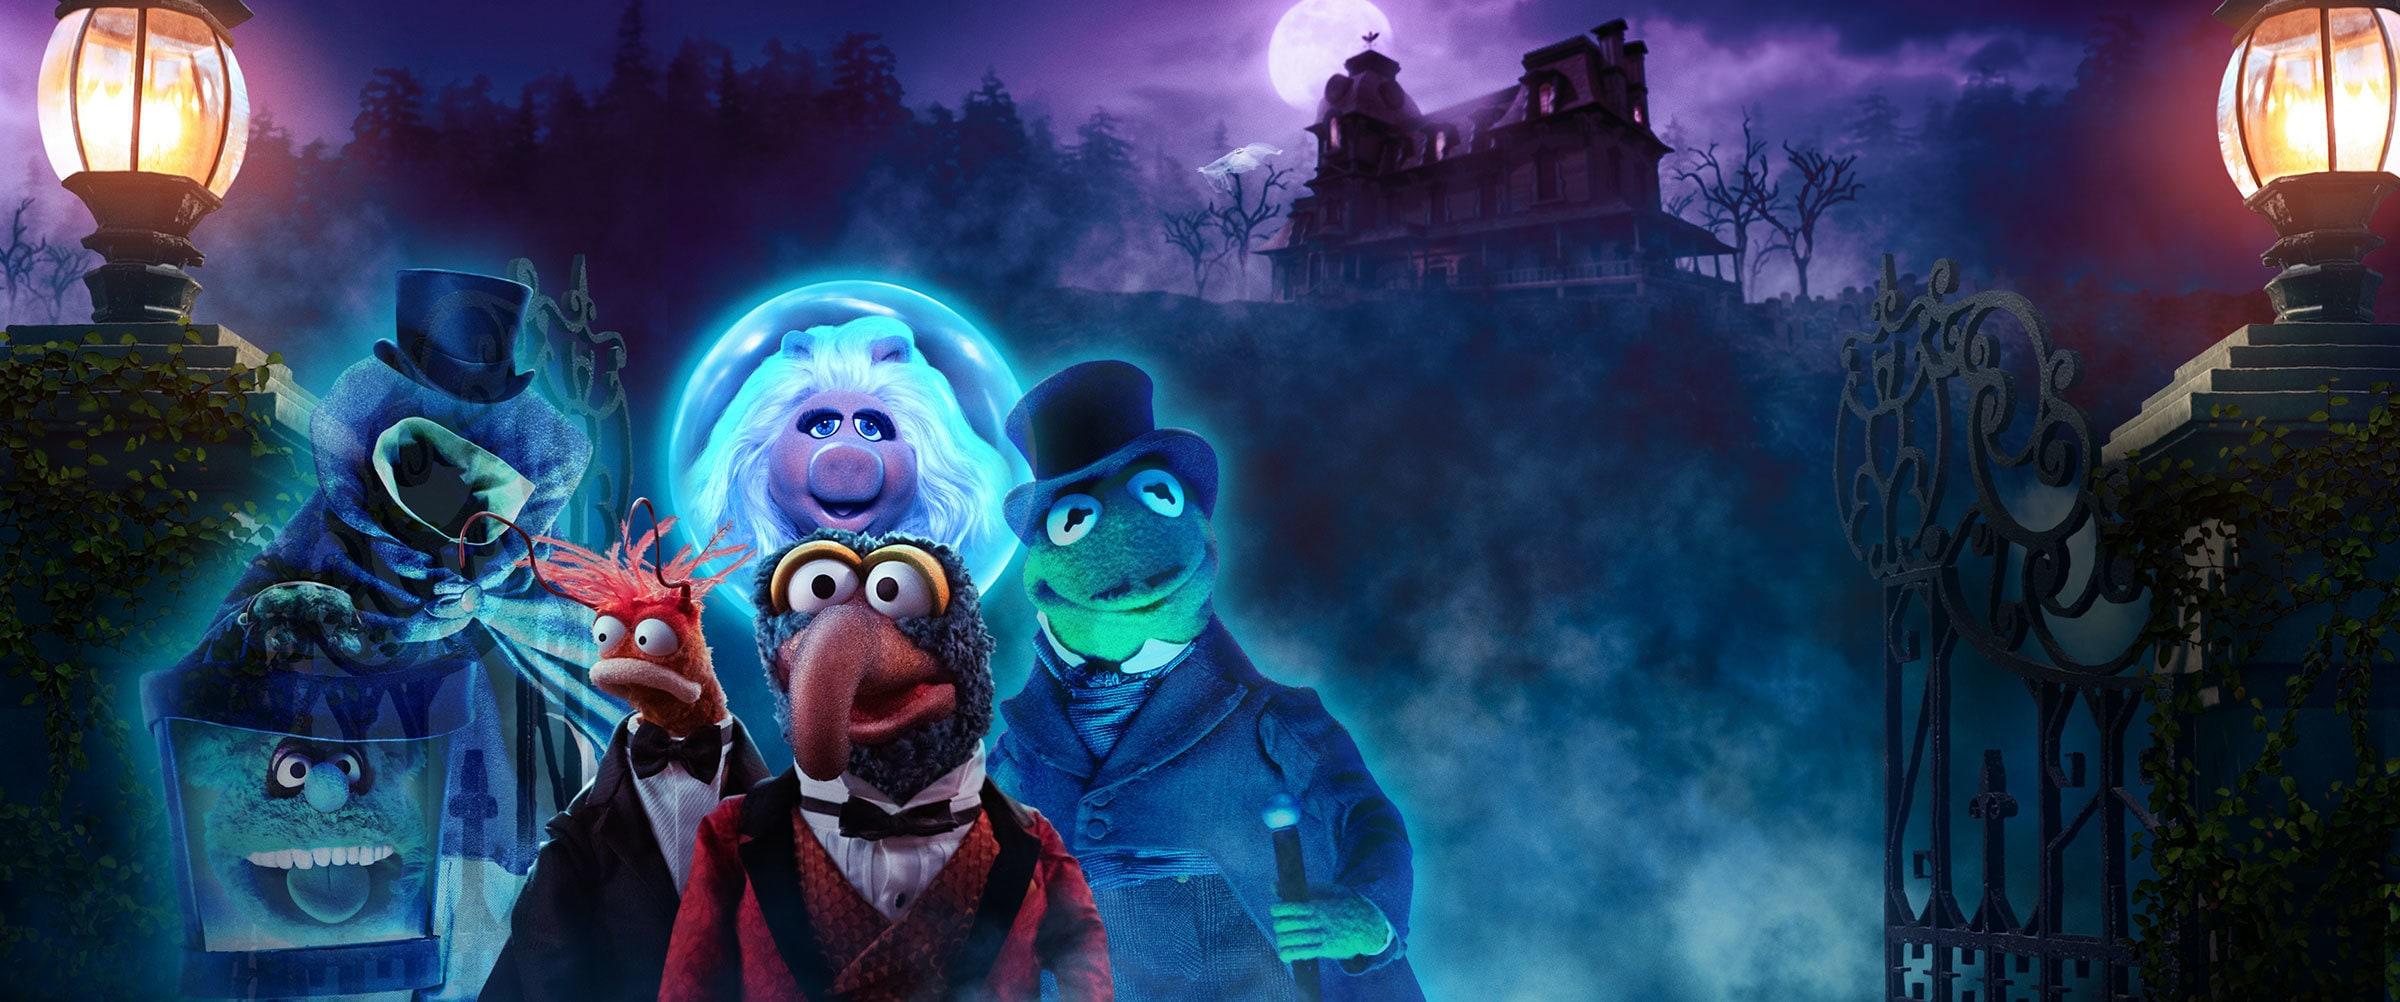 Muppets Haunted Mansion | Now streaming on Disney+